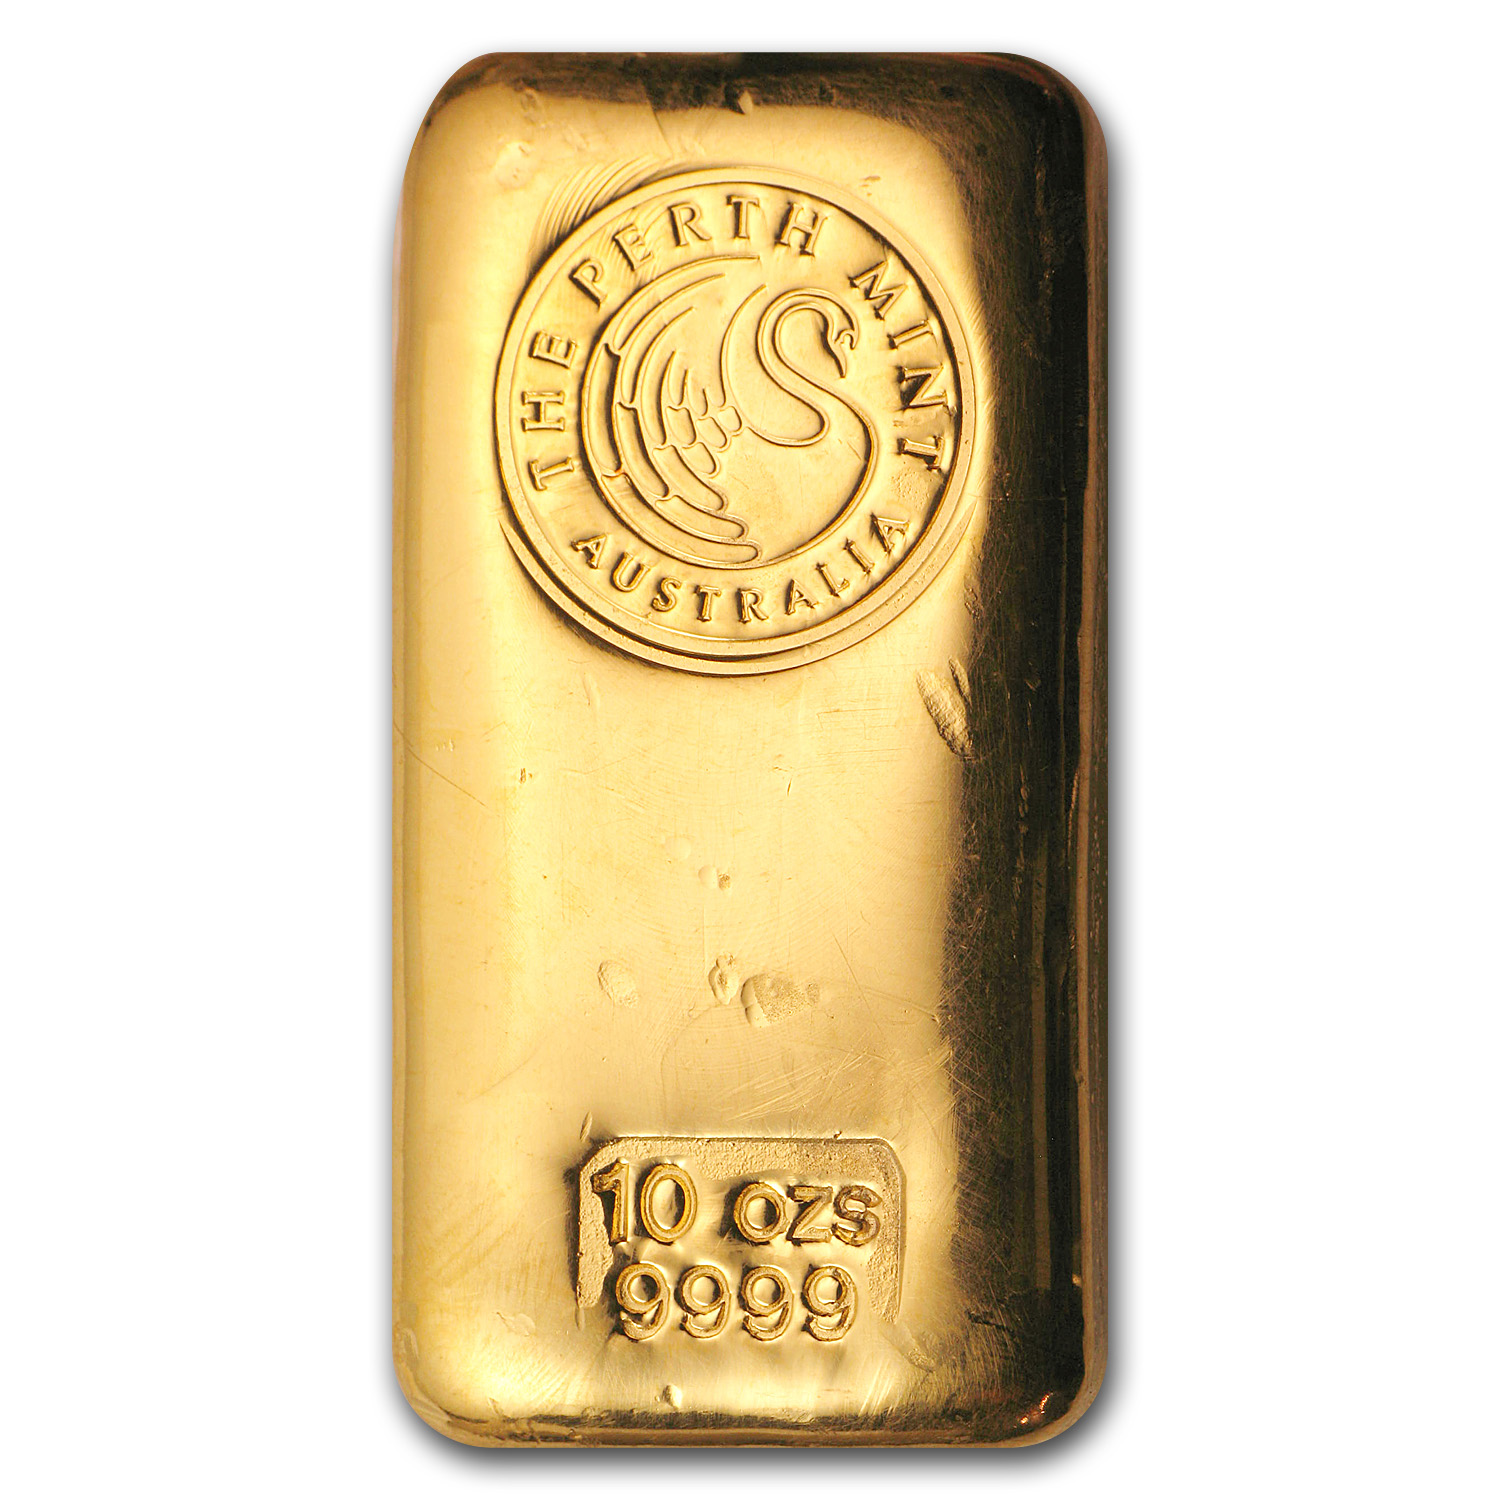 10 oz Gold Bar - Perth Mint (Poured/Loaf-Style)